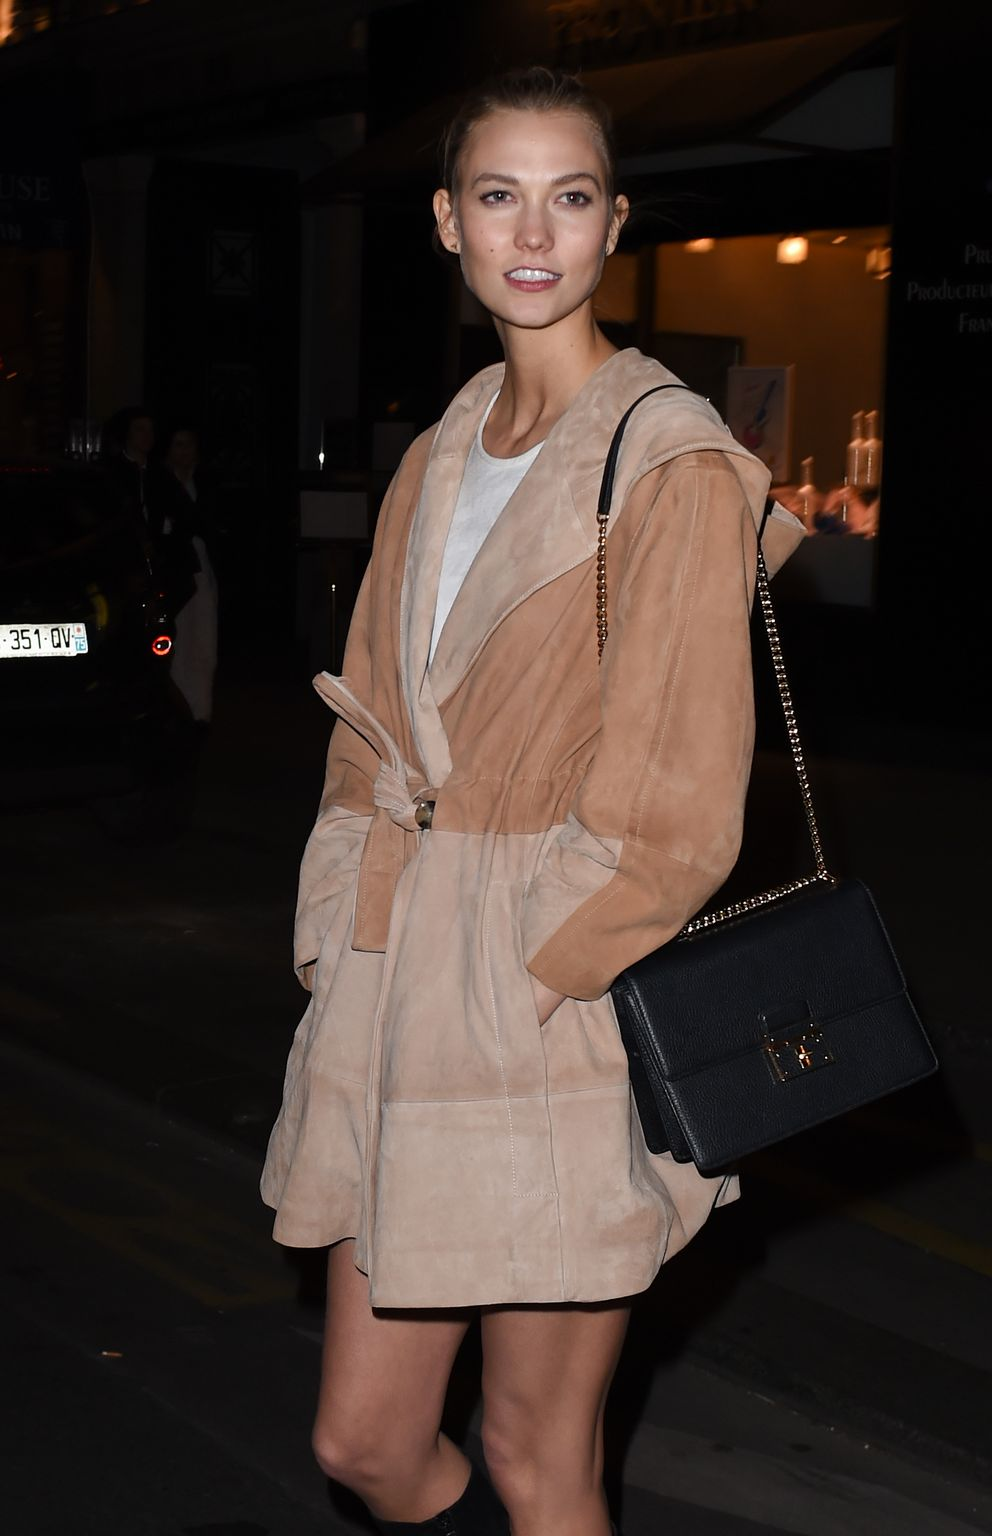 Karlie Kloss At Caviar Kaspia french restaurant – March 7